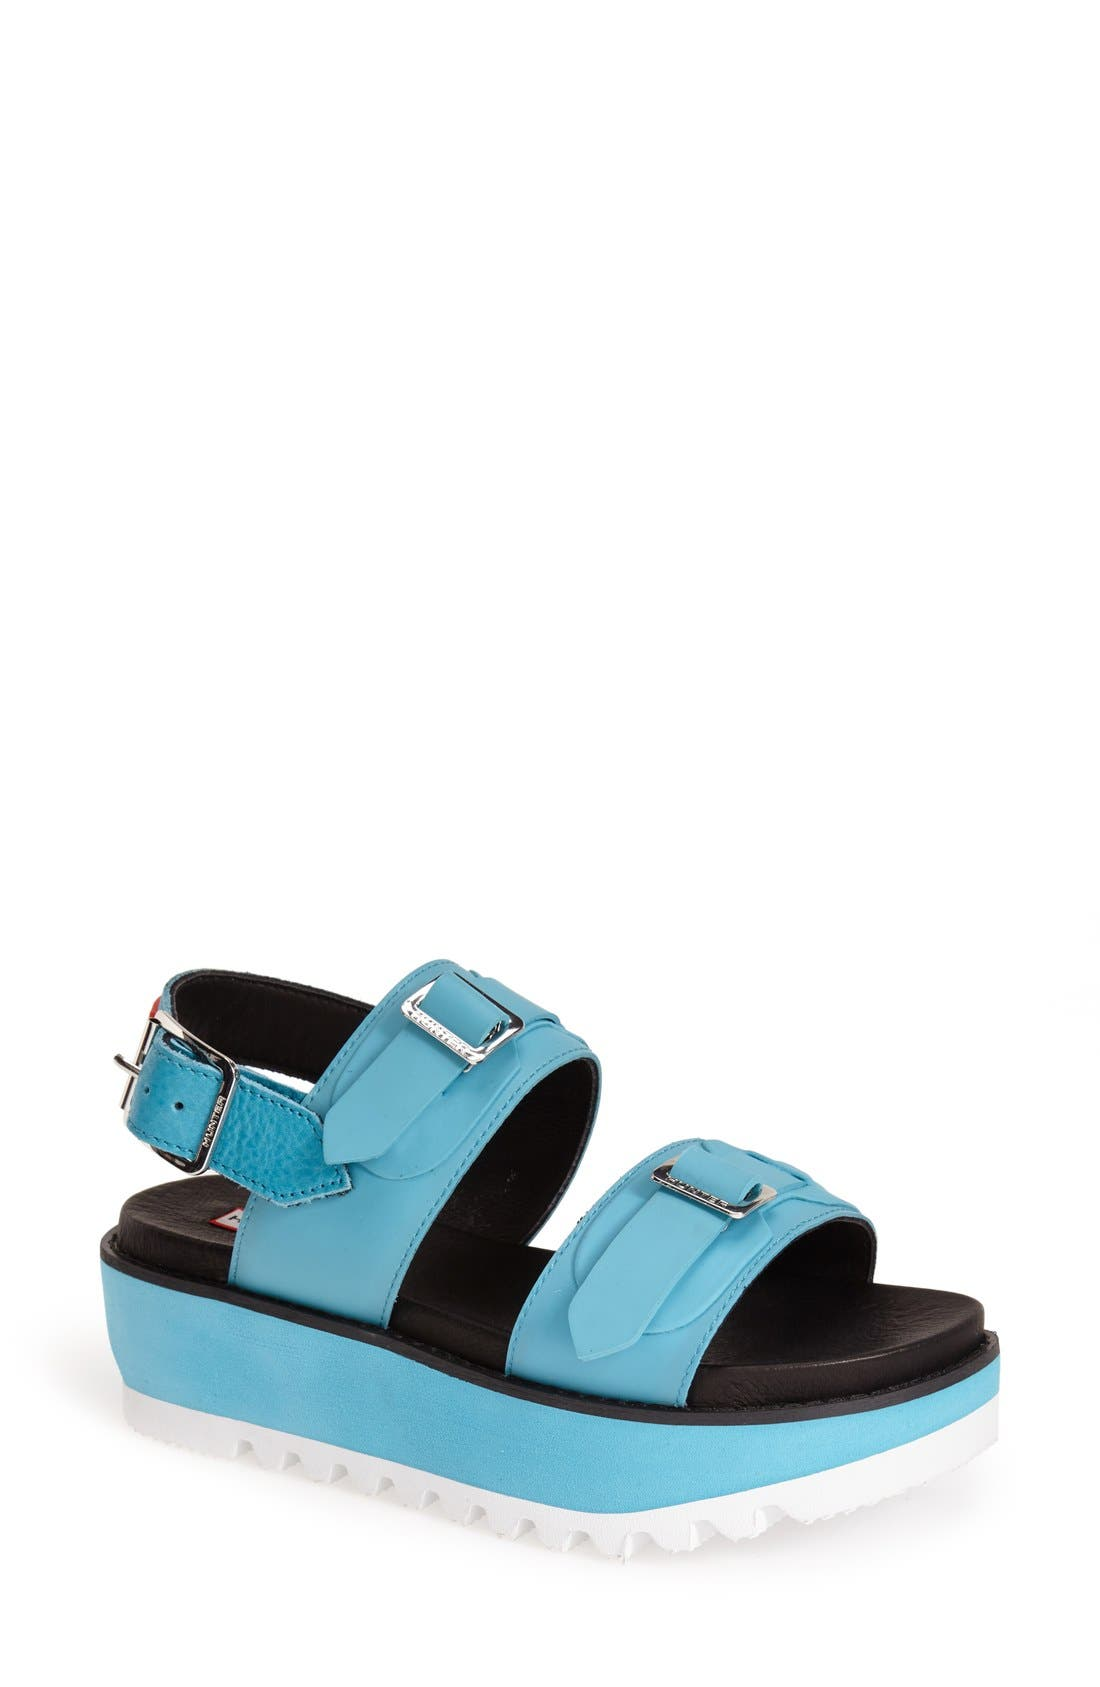 Main Image - Hunter Double Buckle Mid Flatform Sandal (Women)